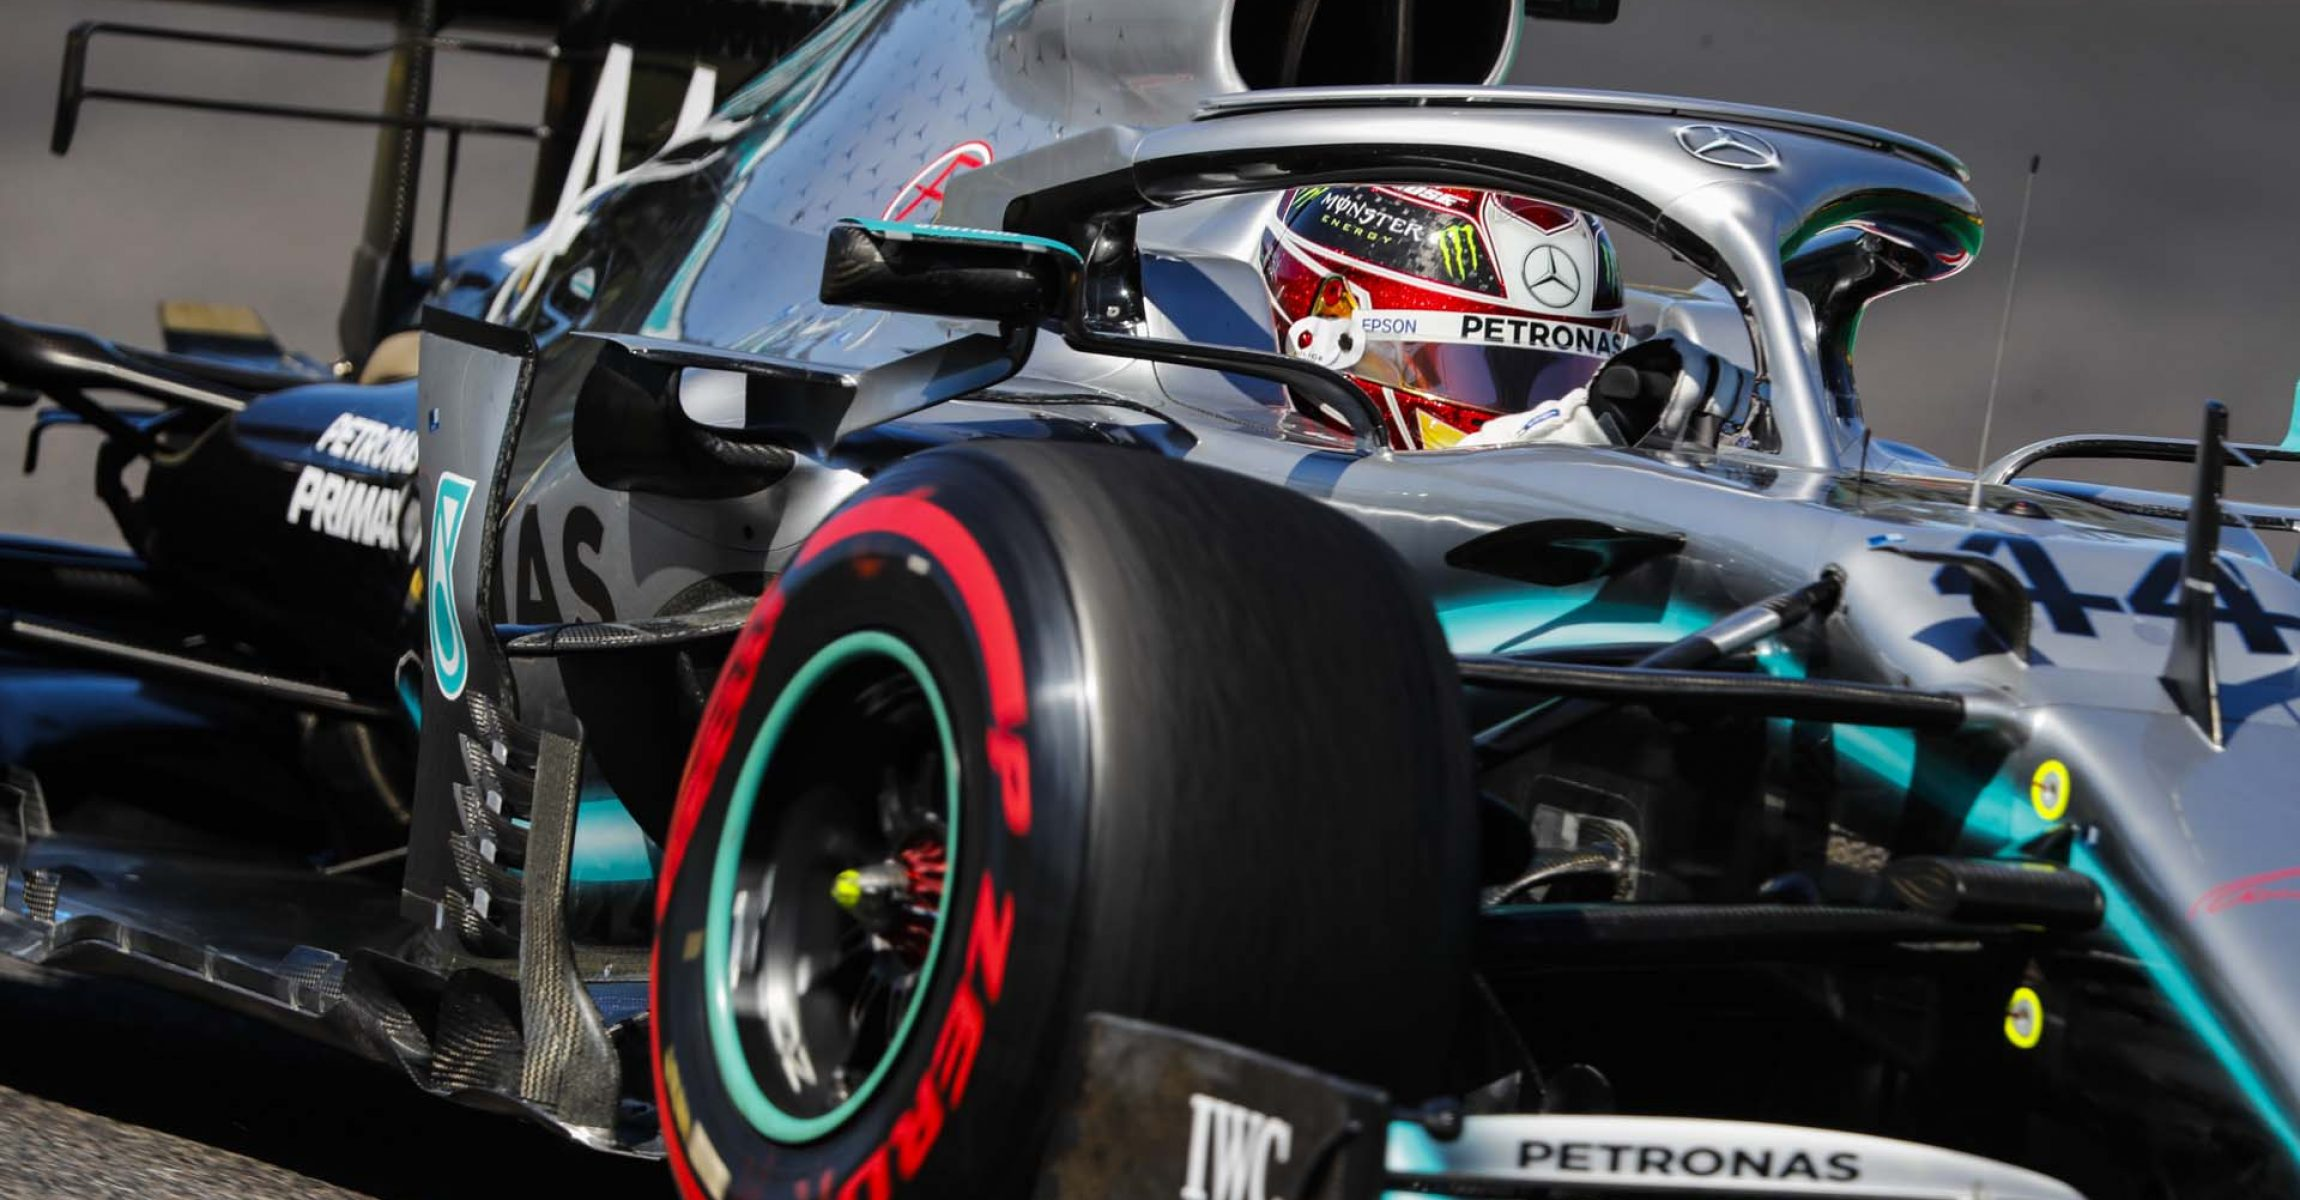 2019 Japanese Grand Prix, Sunday - LAT Images Lewis Hamilton Mercedes